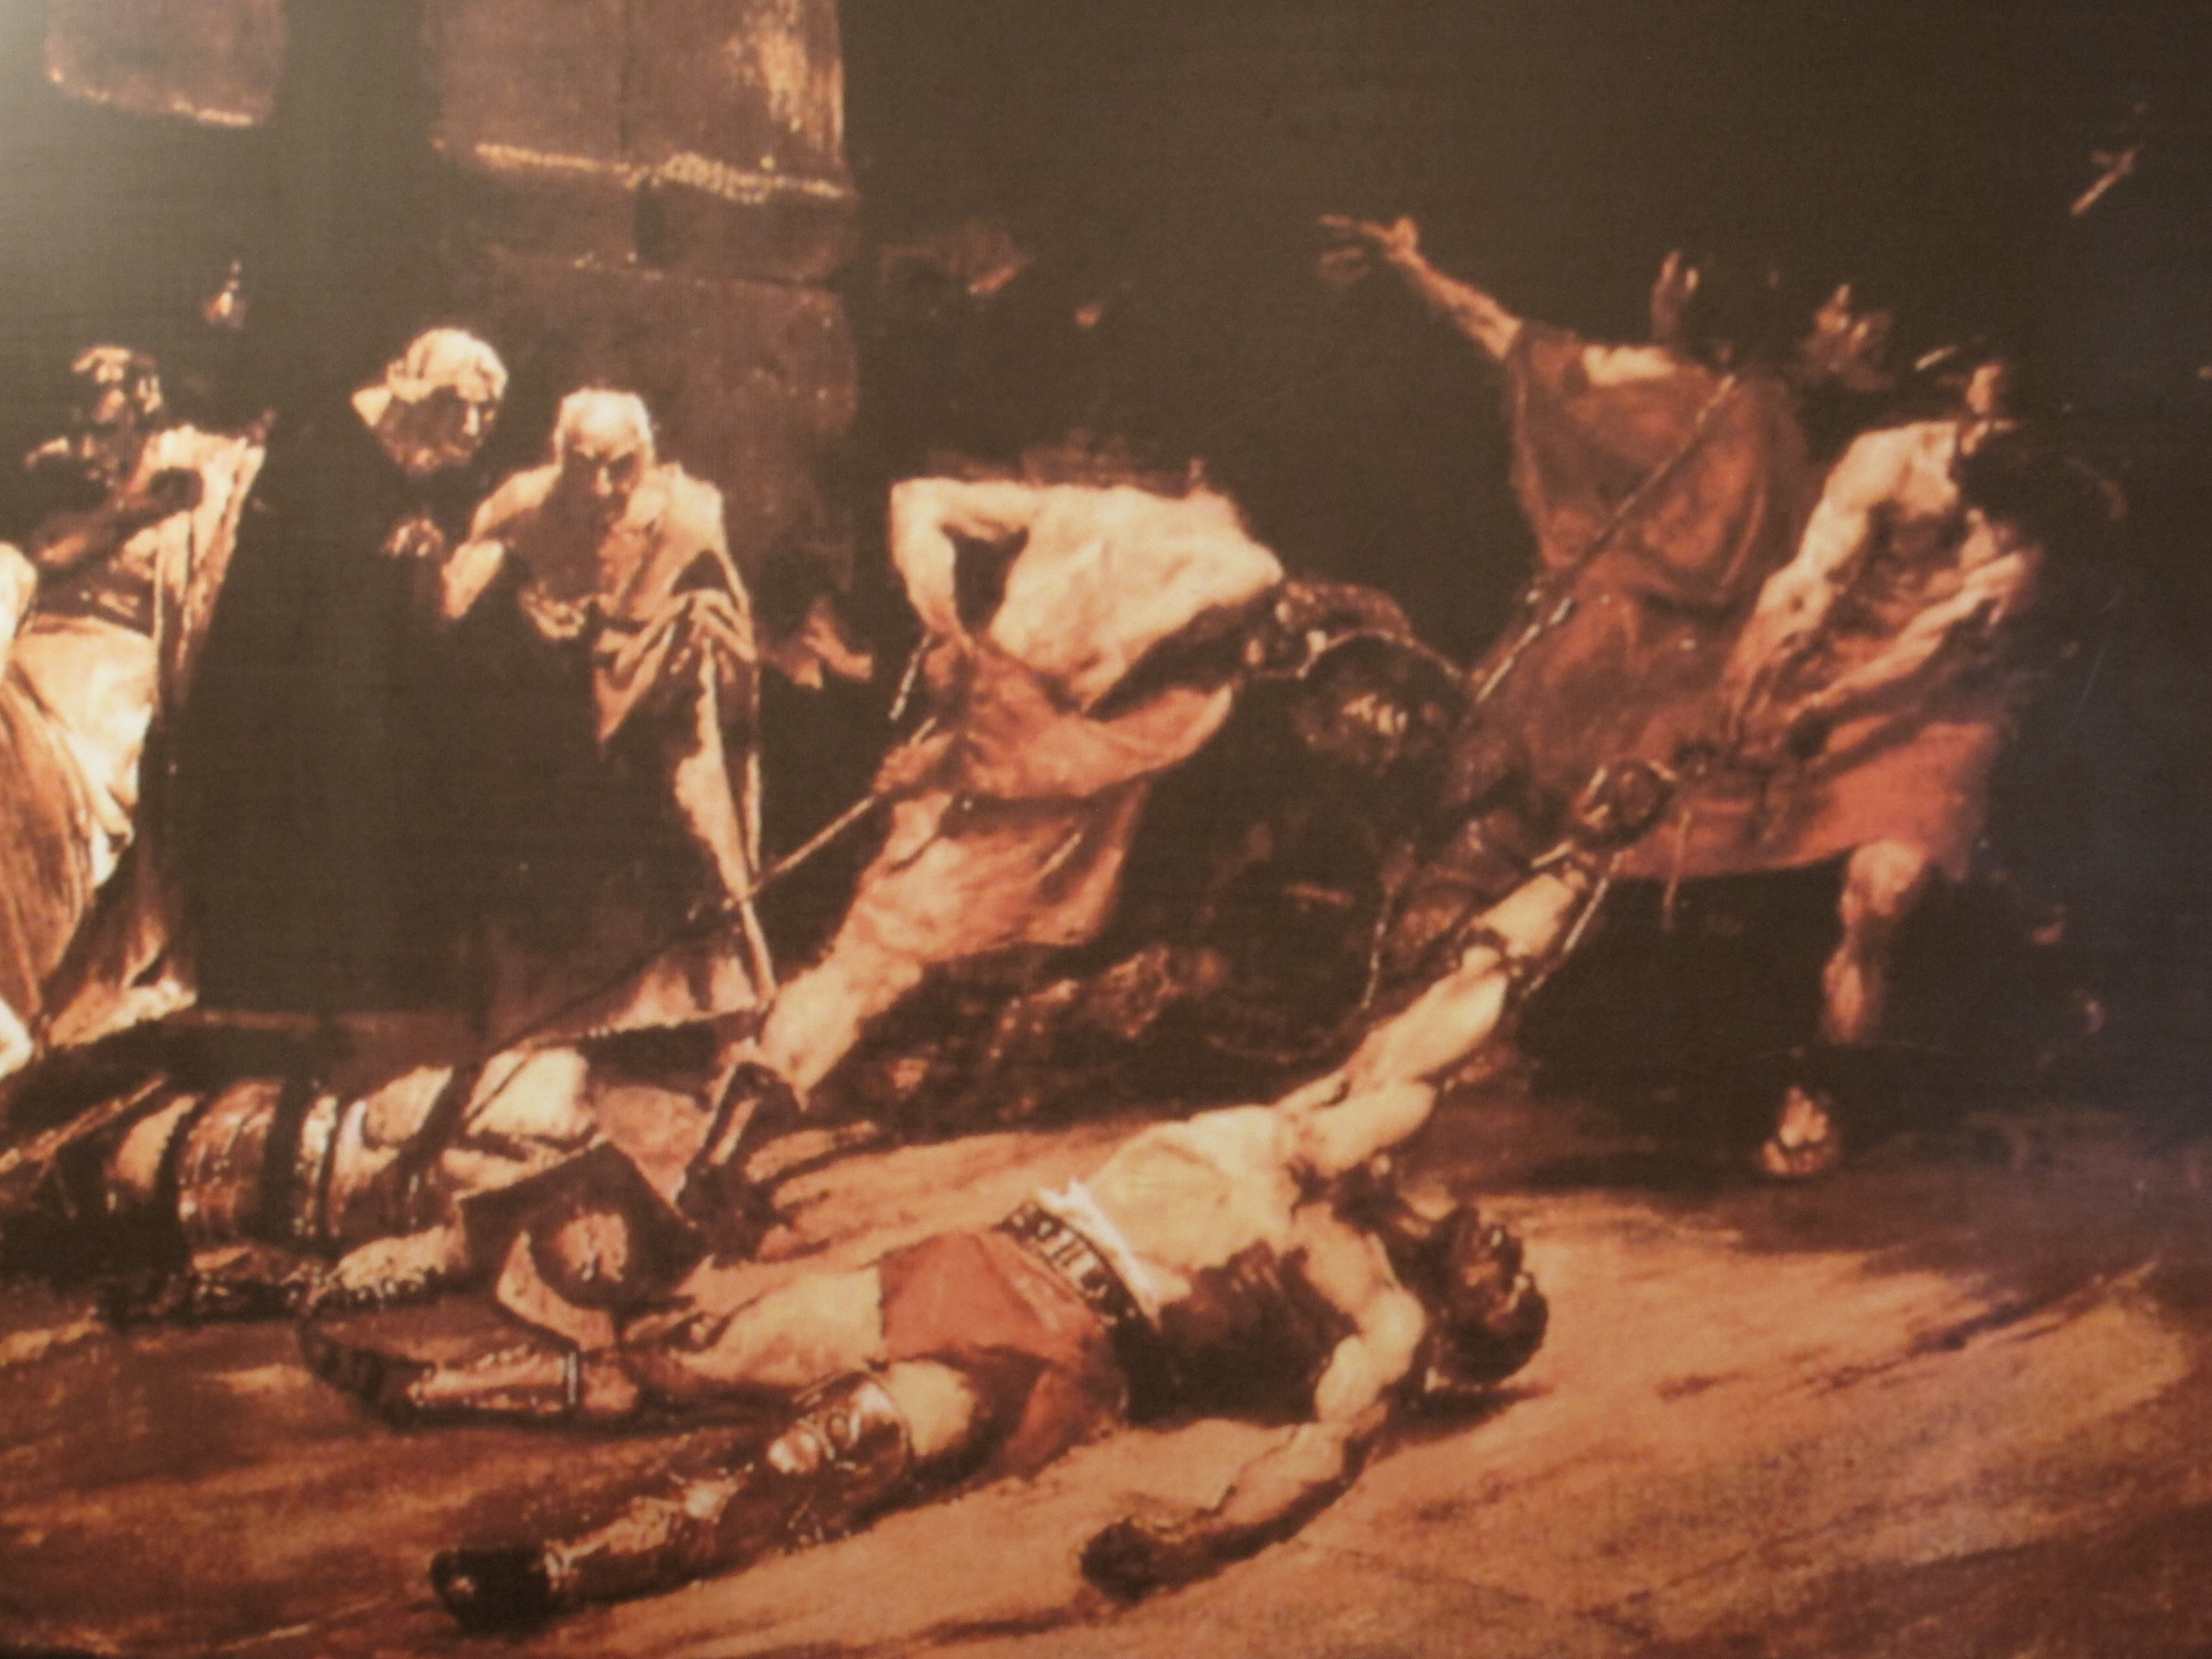 spolarium painting of juan luna means Juan luna's spoliarium depicts a  understood very well the message conveyed in the painting in one post-celebration of luna's and  art on spolarium) .